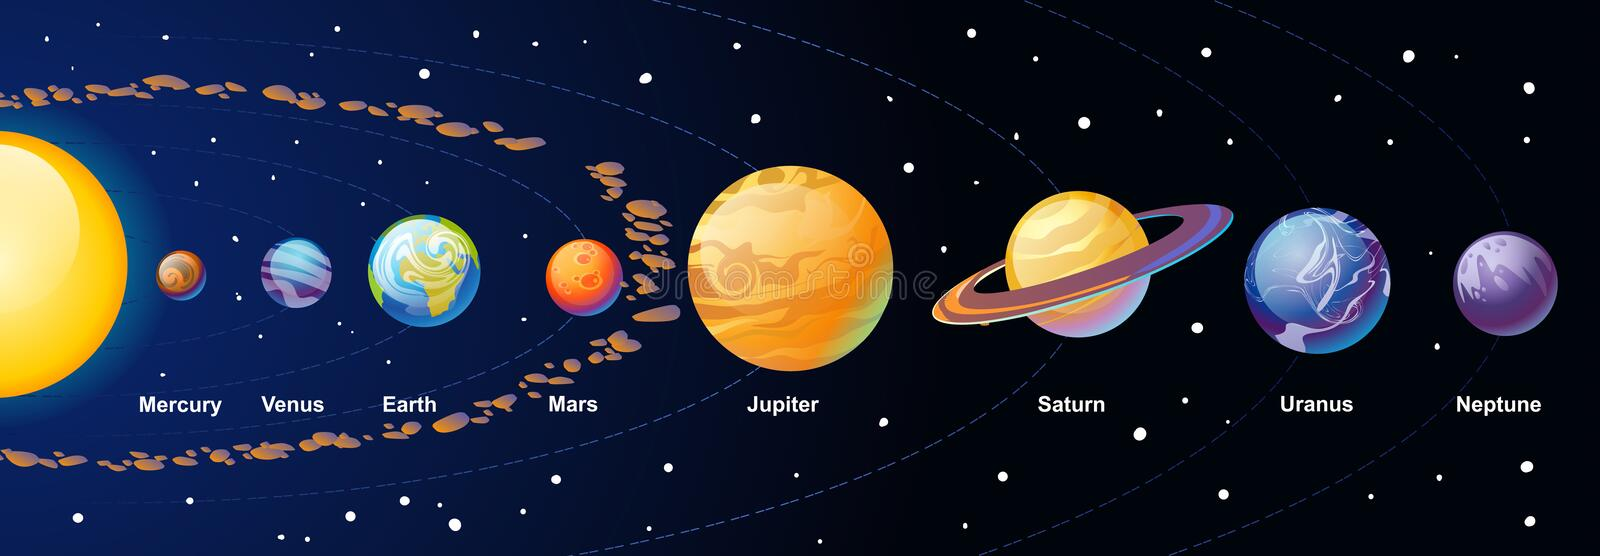 Solar system cartoon illustration with colorful planets and asteroid belt on navy blue gradient background. Vector illustration. vector illustration